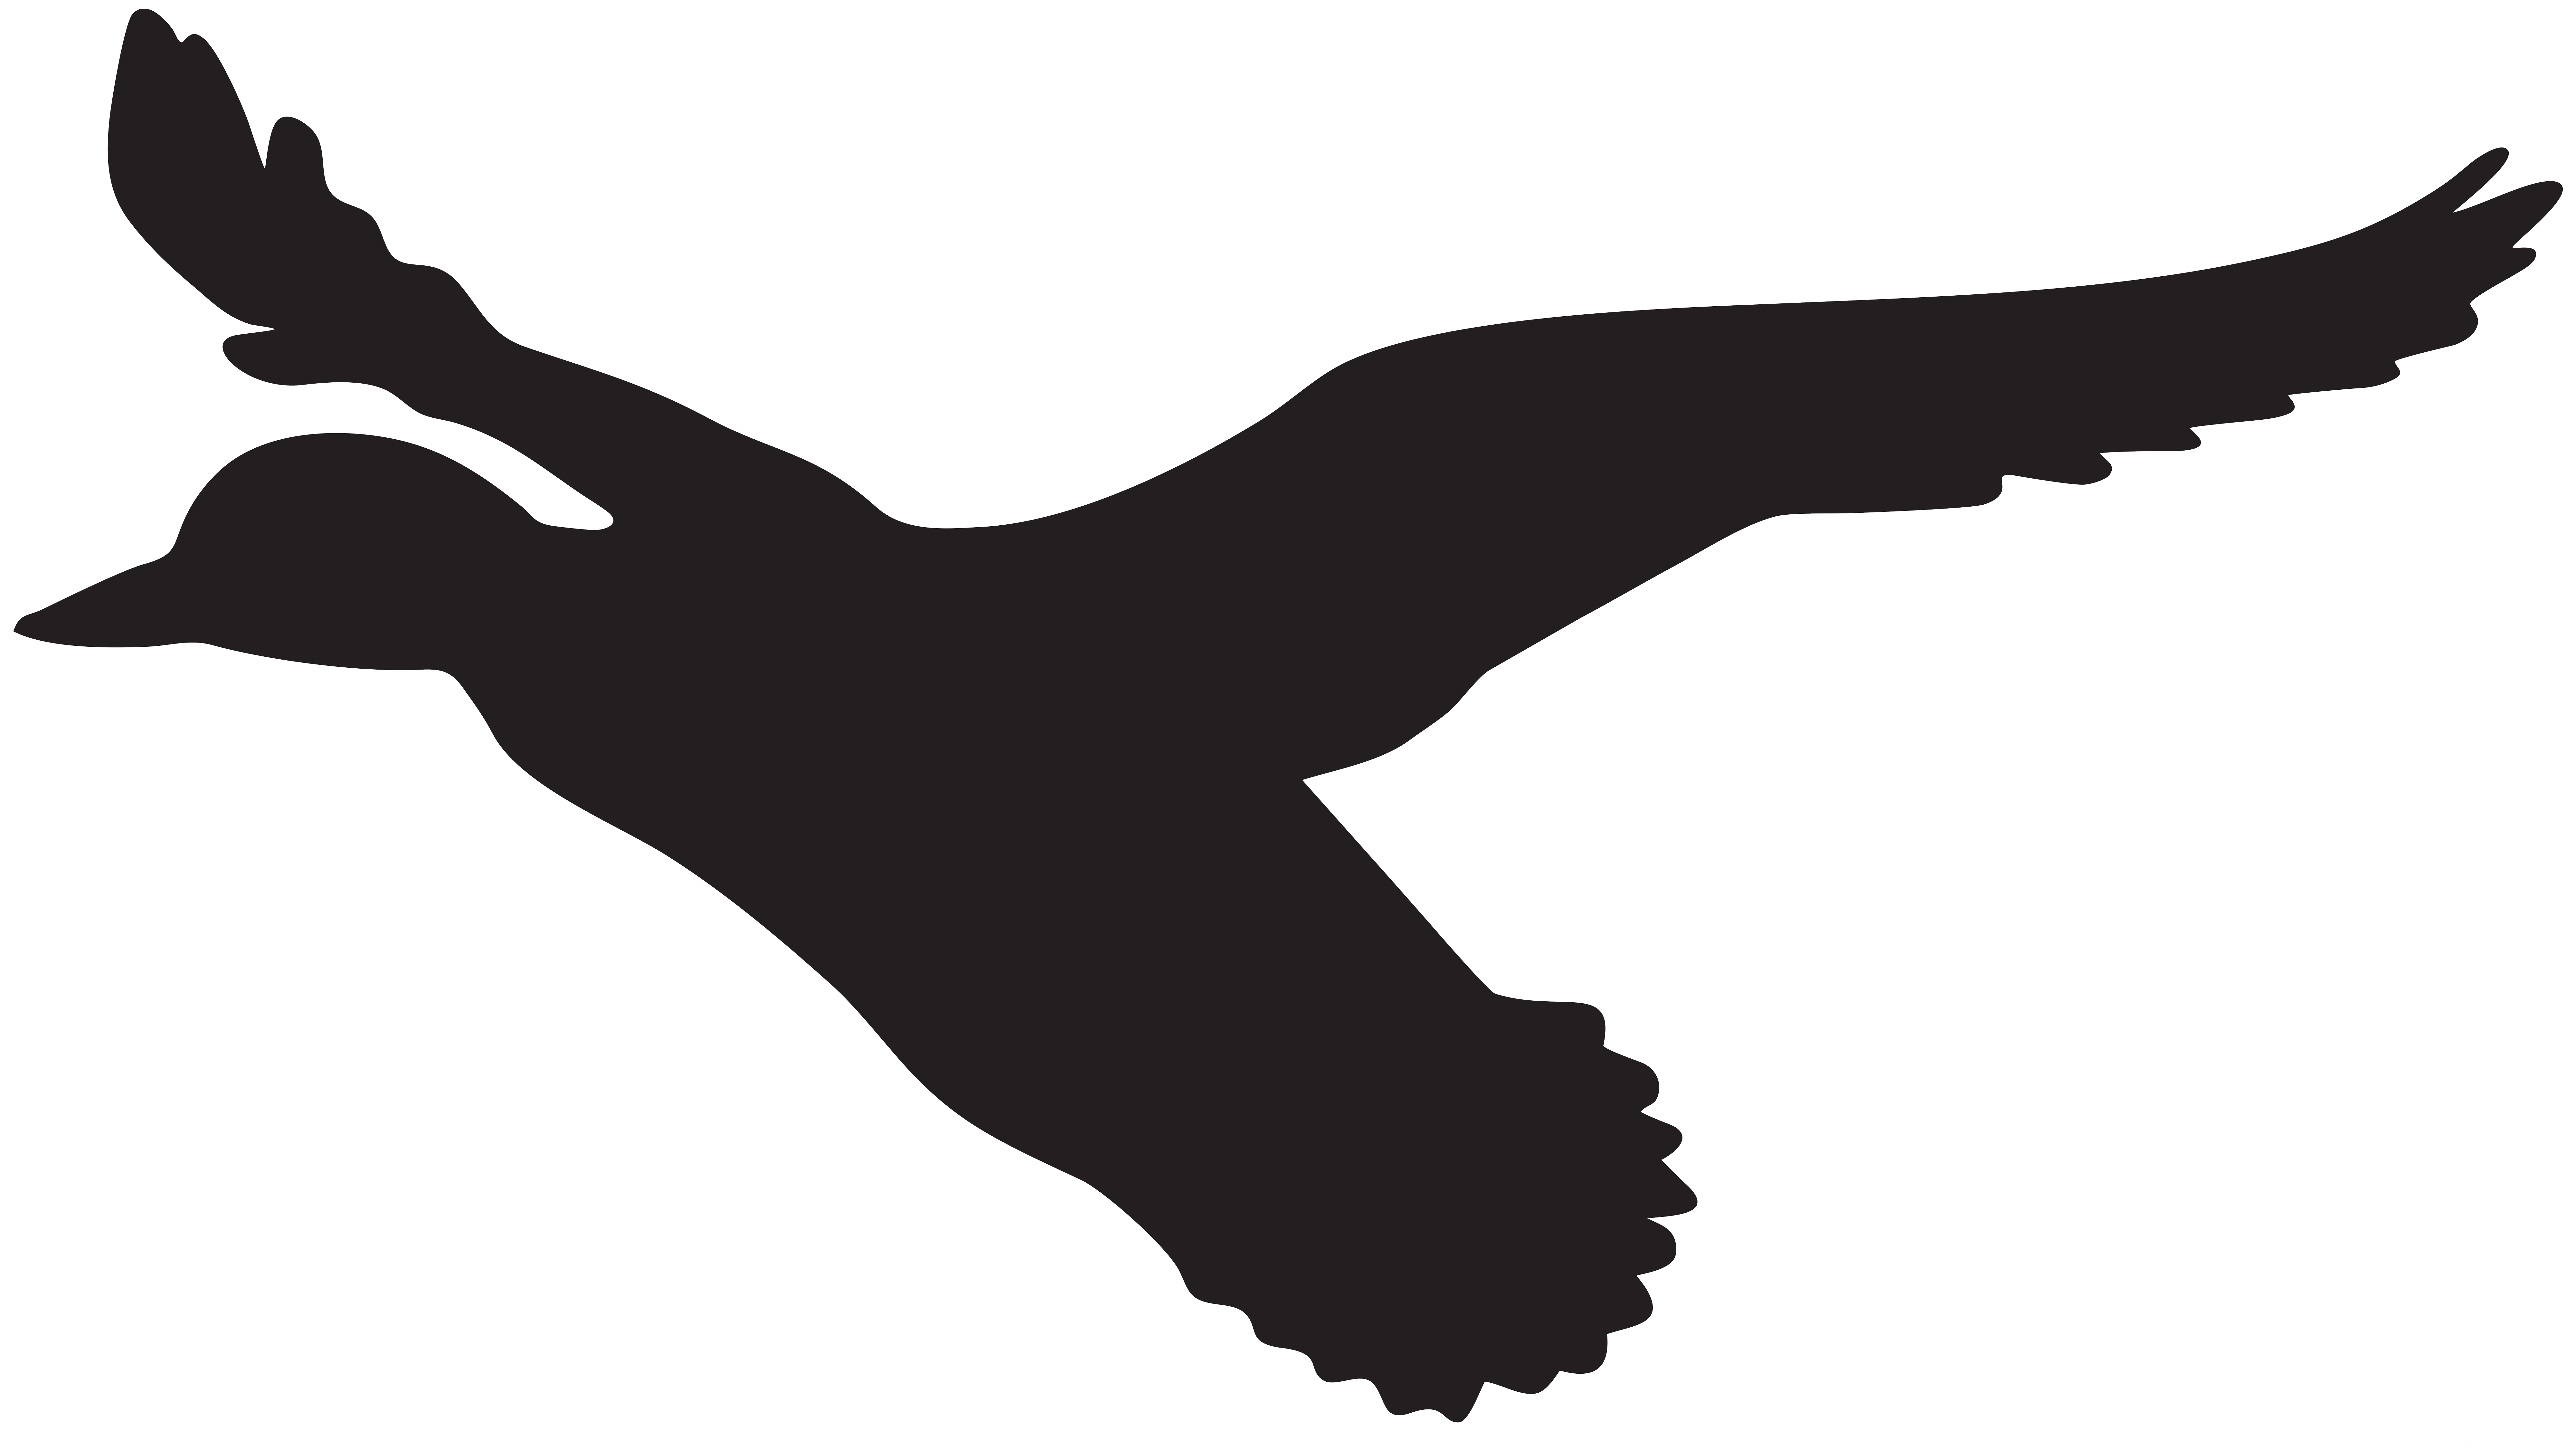 8000x4502 Flying Duck Silhouette Png Clip Art Imageu200b Gallery Yopriceville